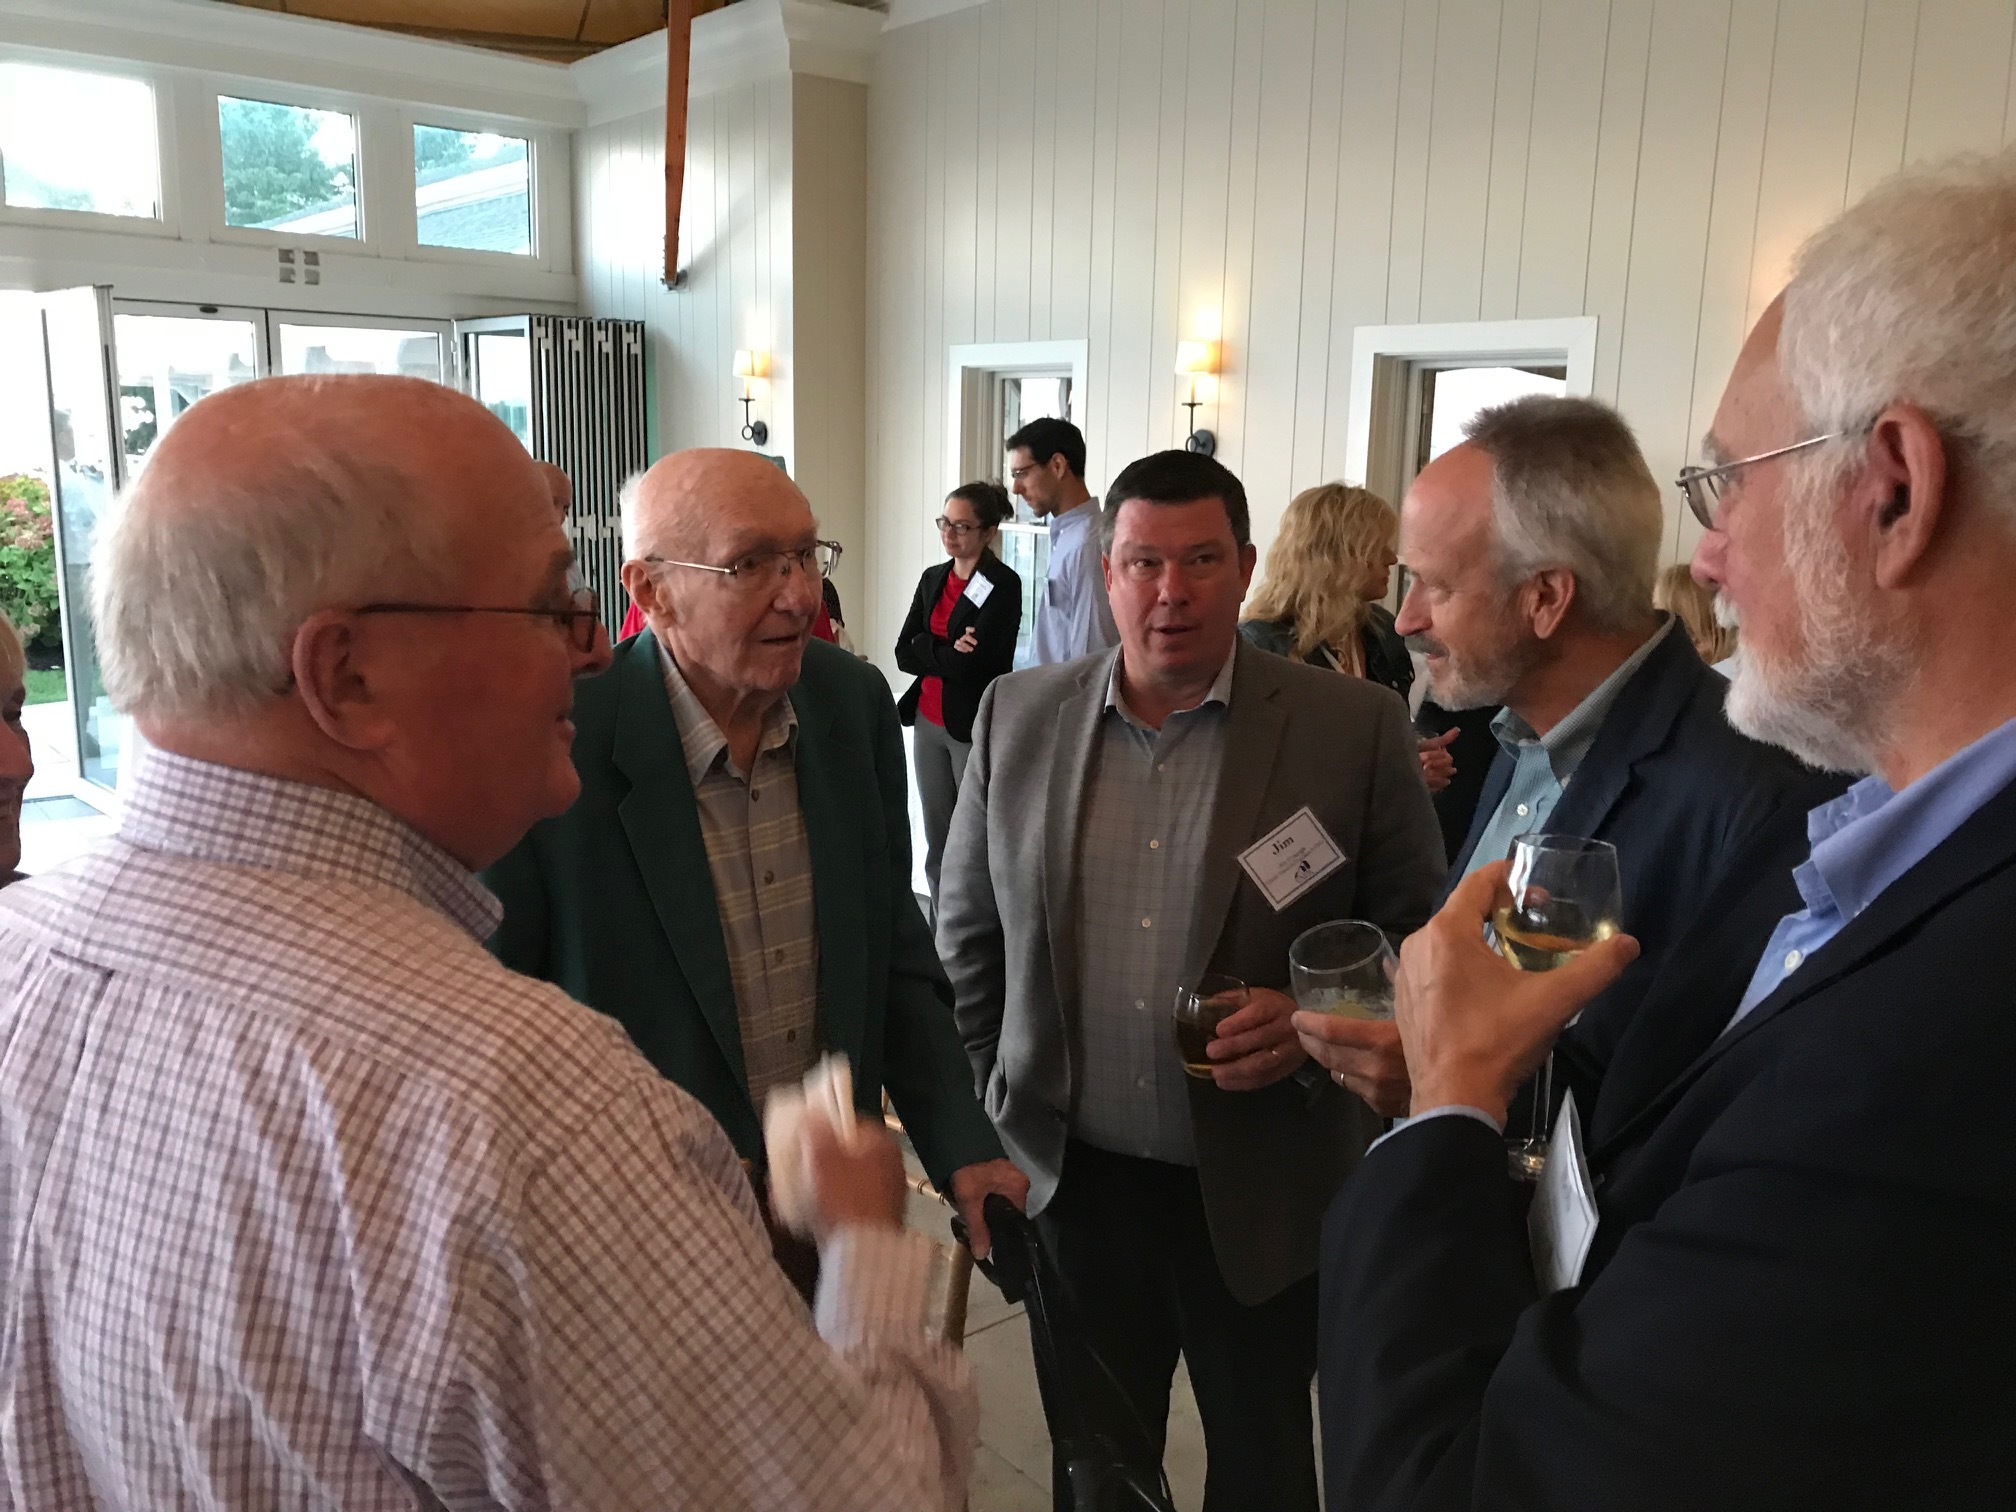 From left, Len Jacobs, Hank Anderson, Jim Czapiga, Peter Ebersol, and Bob Carey at the CATIC dinner on Cape Cod.